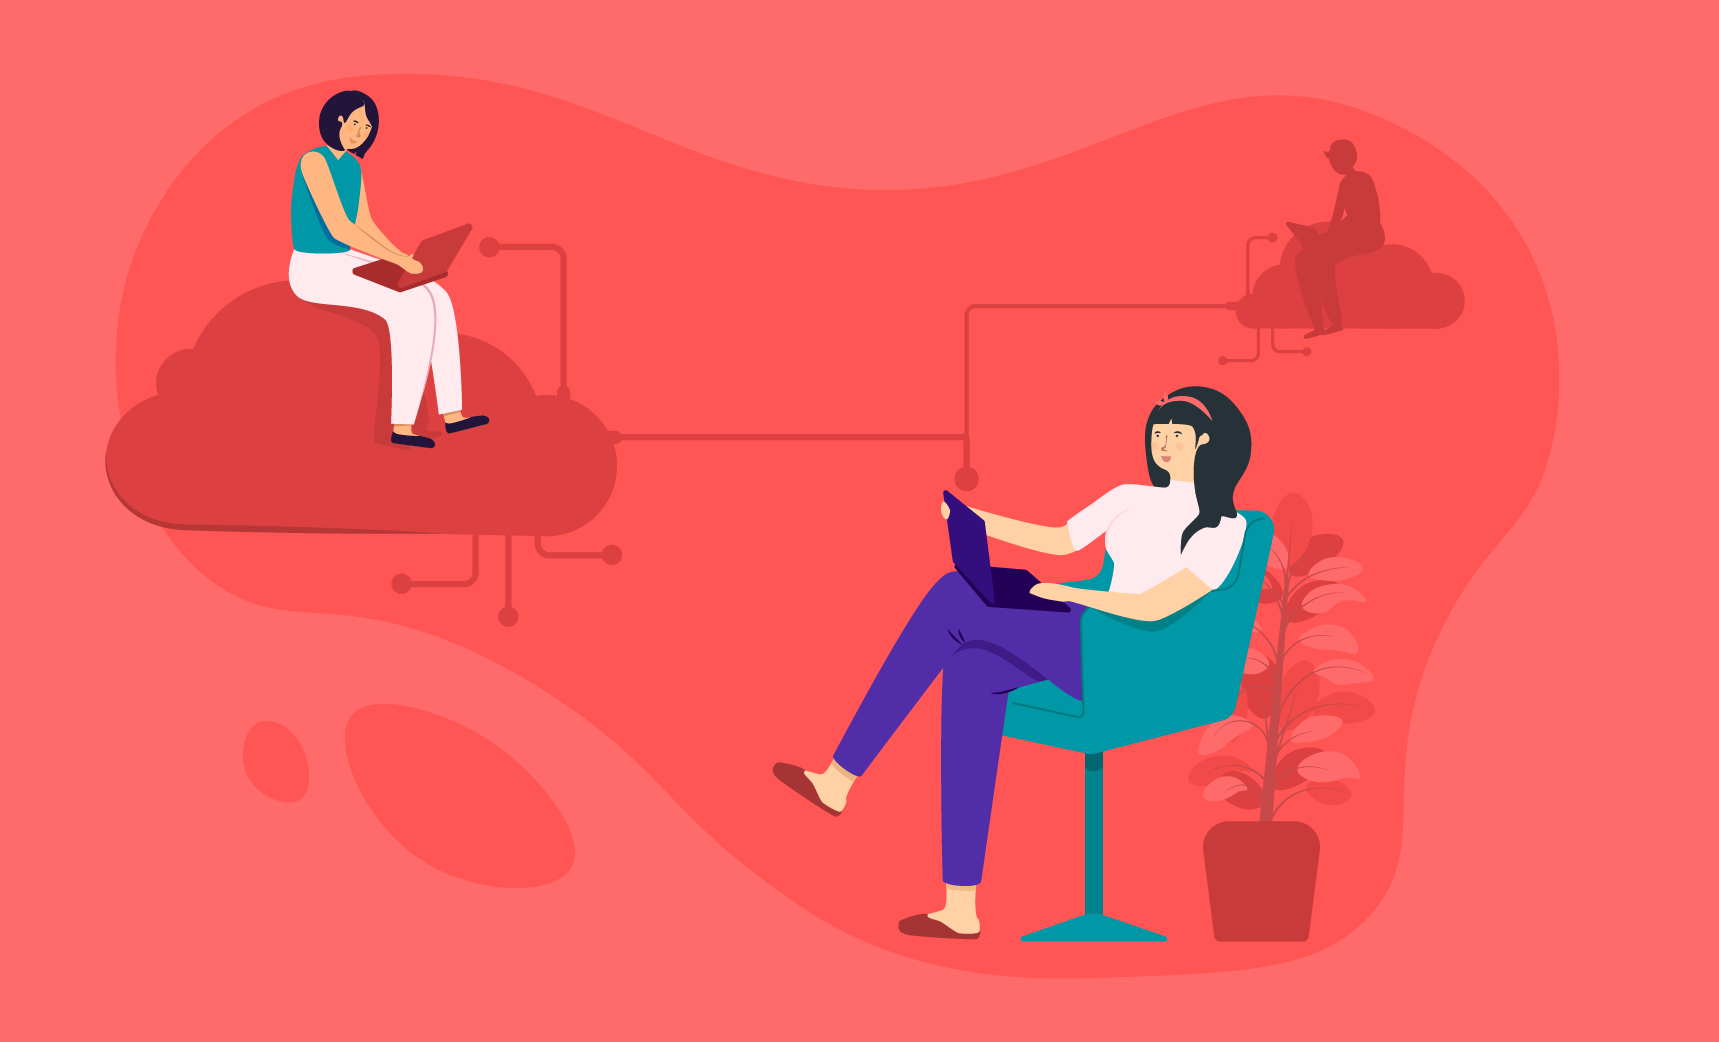 4 tools that solve 4 problems of remote work